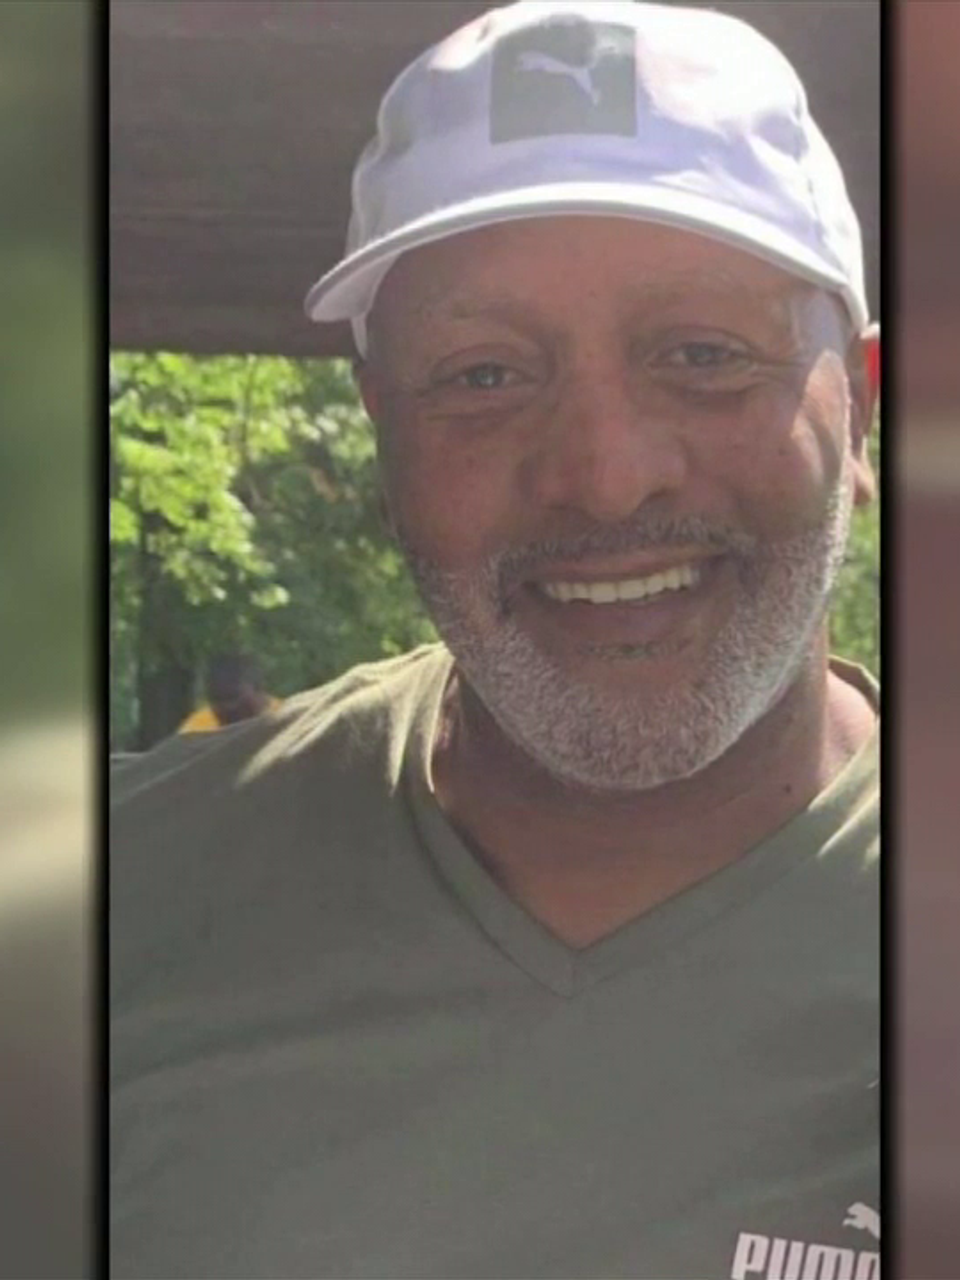 Funeral Held For Slain Mta Bus Driver Wbff I second this, marcus doesn't talk about his personal life as much as the other guys on any of the someone did indeed send pickles as a gift, and marcus was excited because he and his girlfriend. funeral held for slain mta bus driver